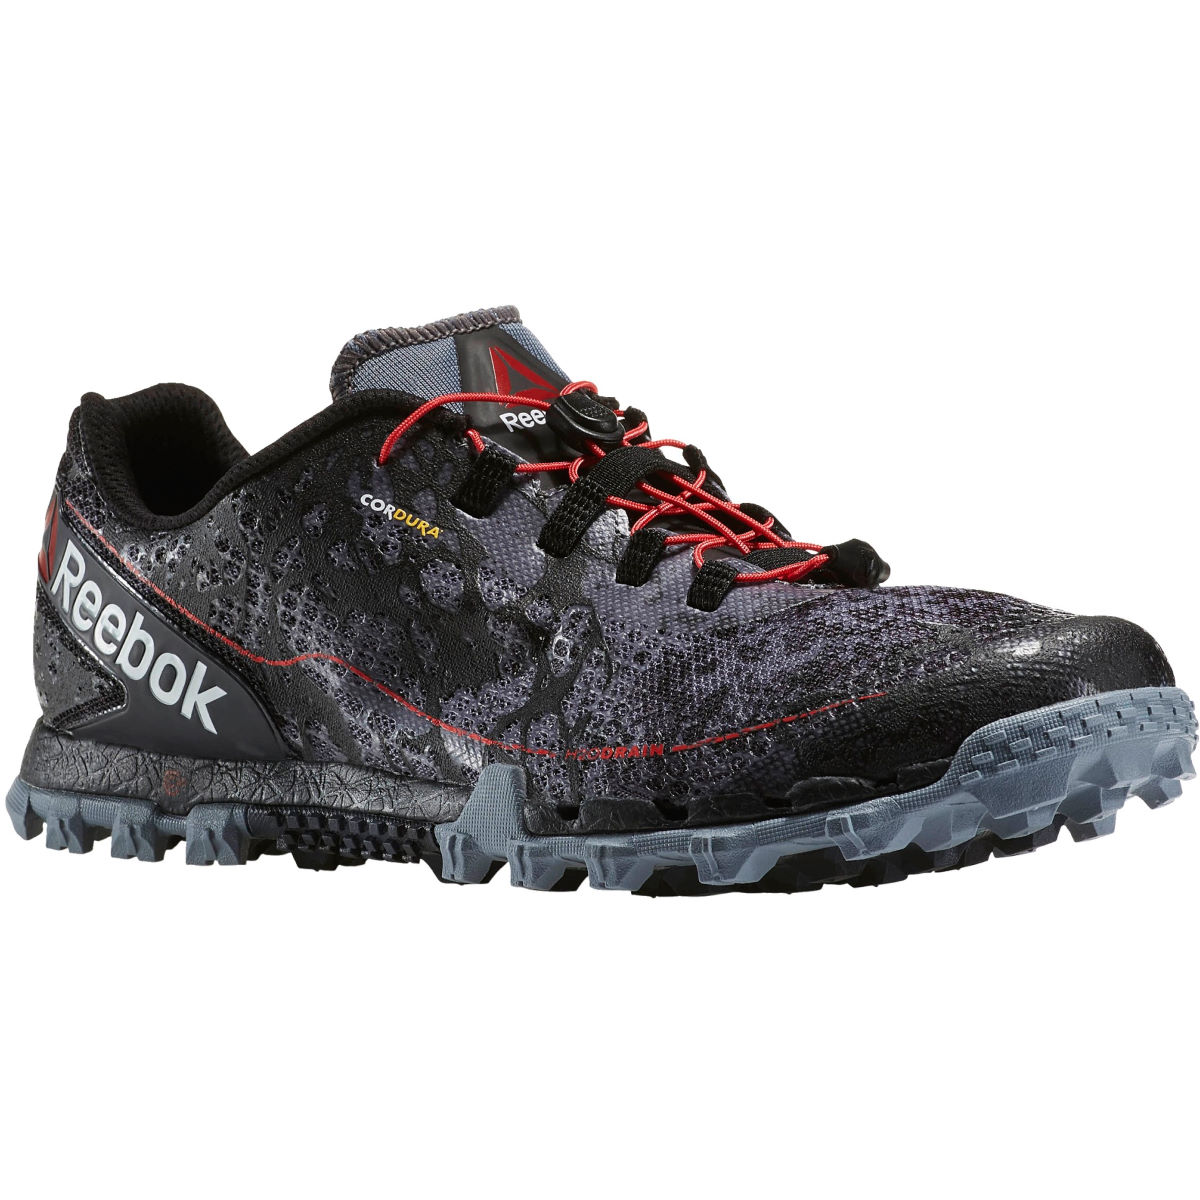 Chaussures Reebok All Terrain Super OR (AH16) - 7 UK Gris Chaussures de running trail